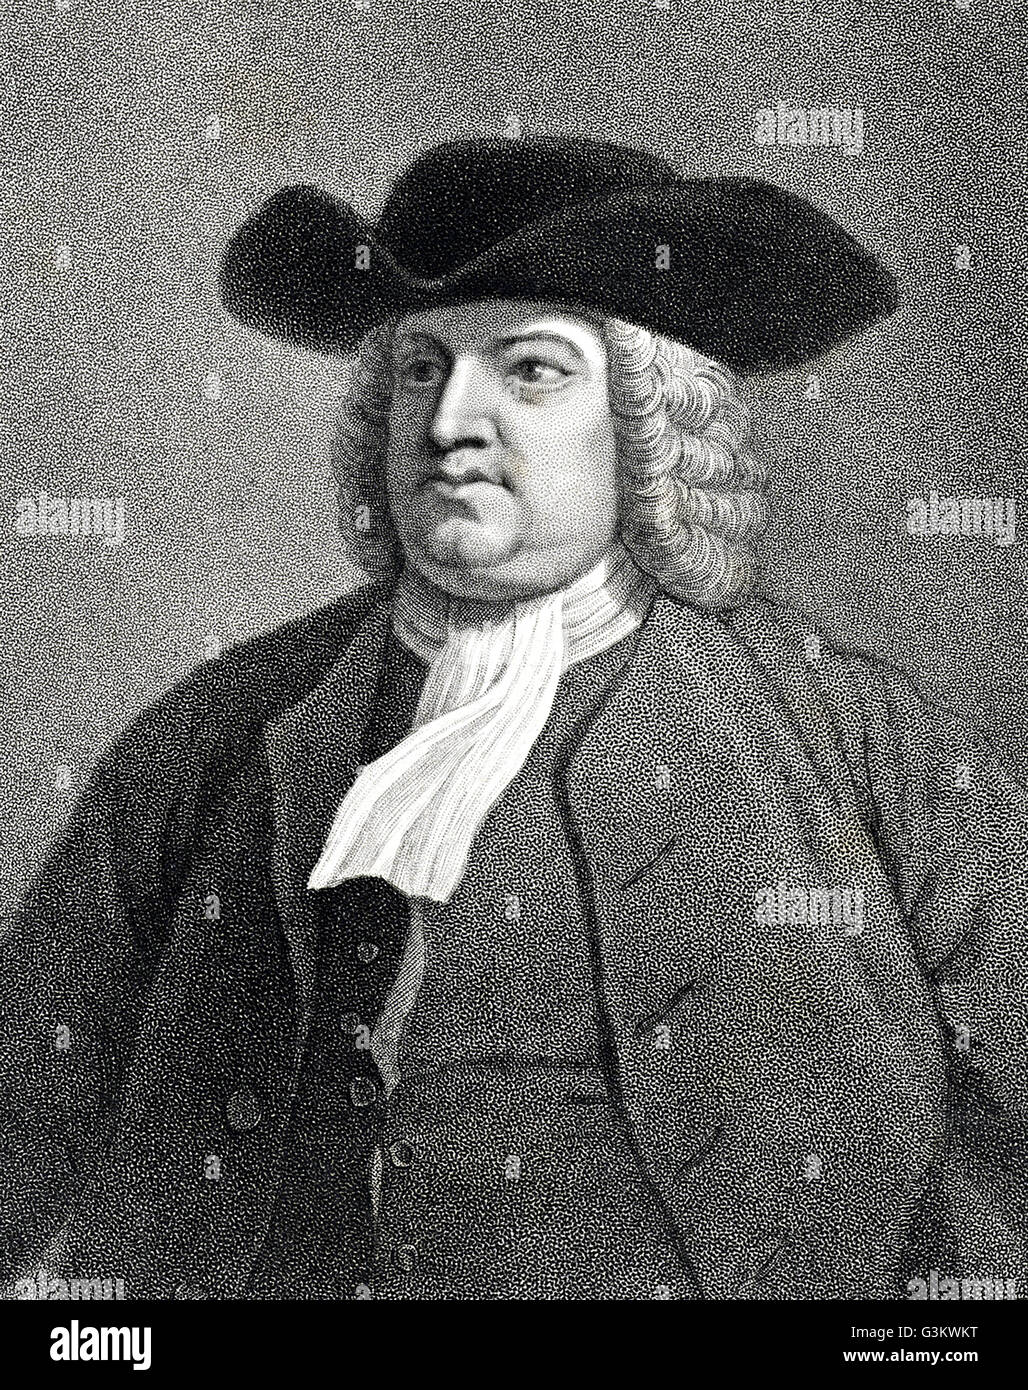 William Penn, 1644 - 1718 Stock Photo